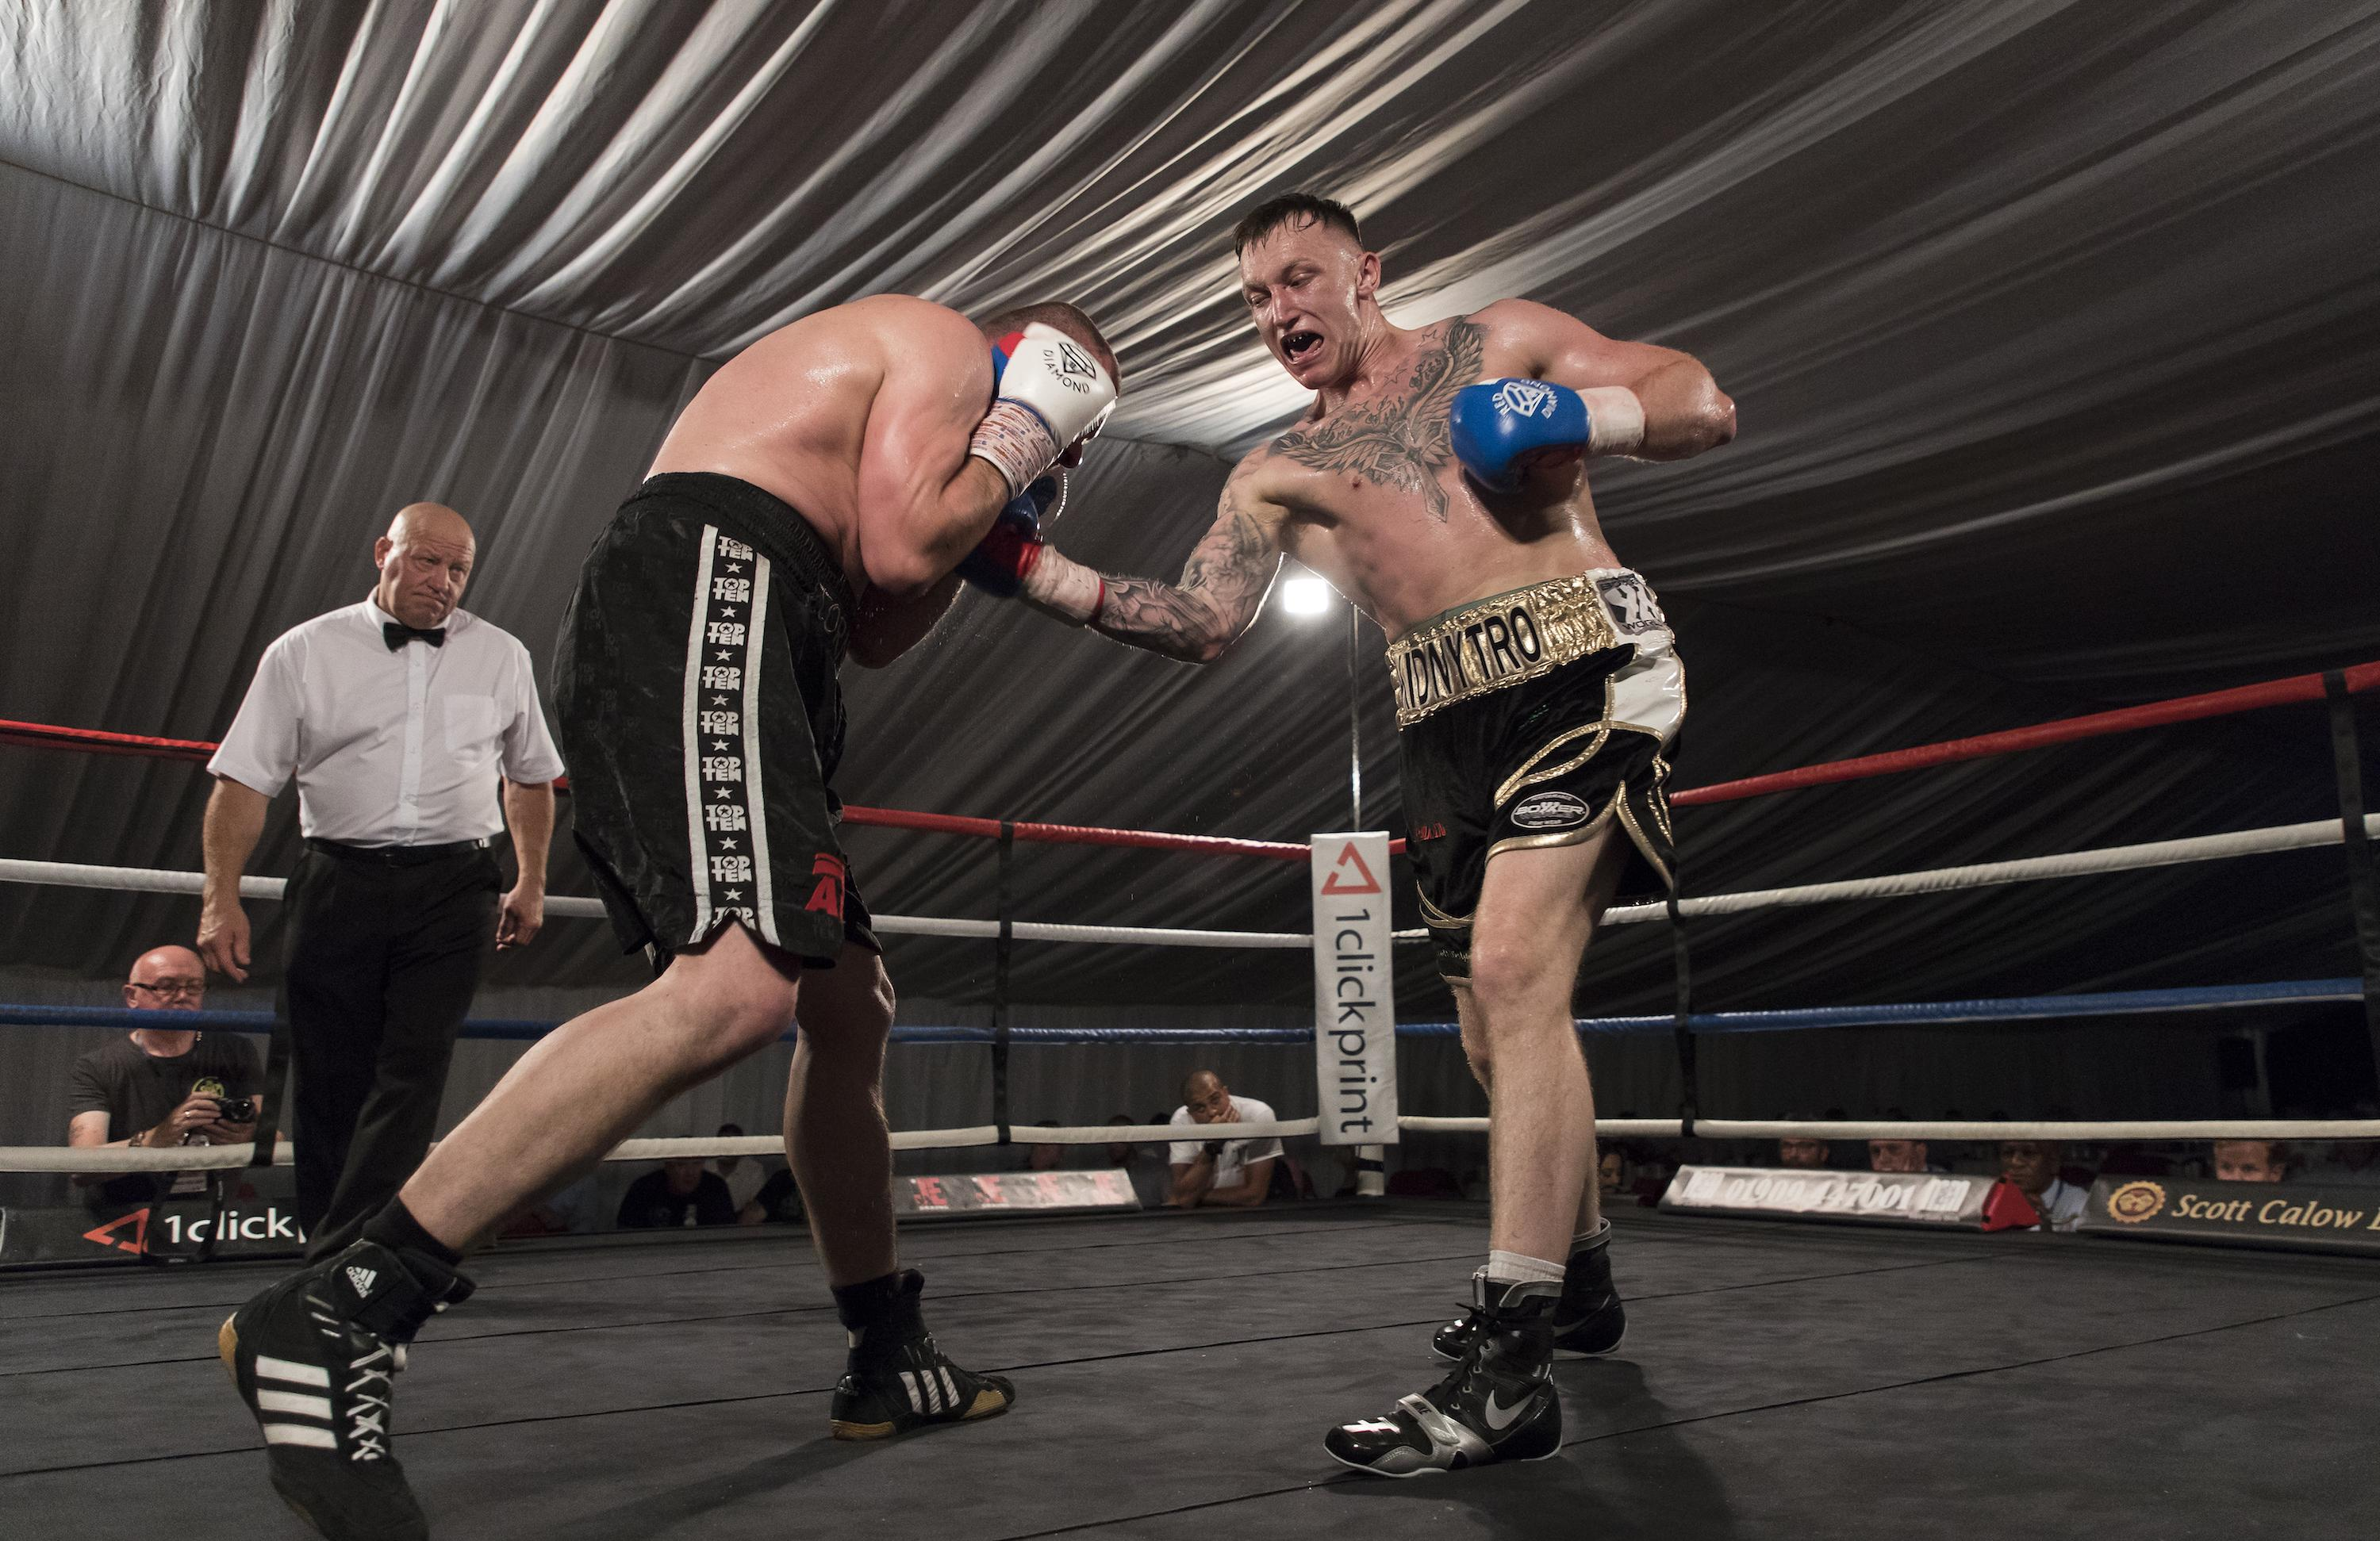 Dec Spelman has returned to the ring to fight on for the Westgarth family